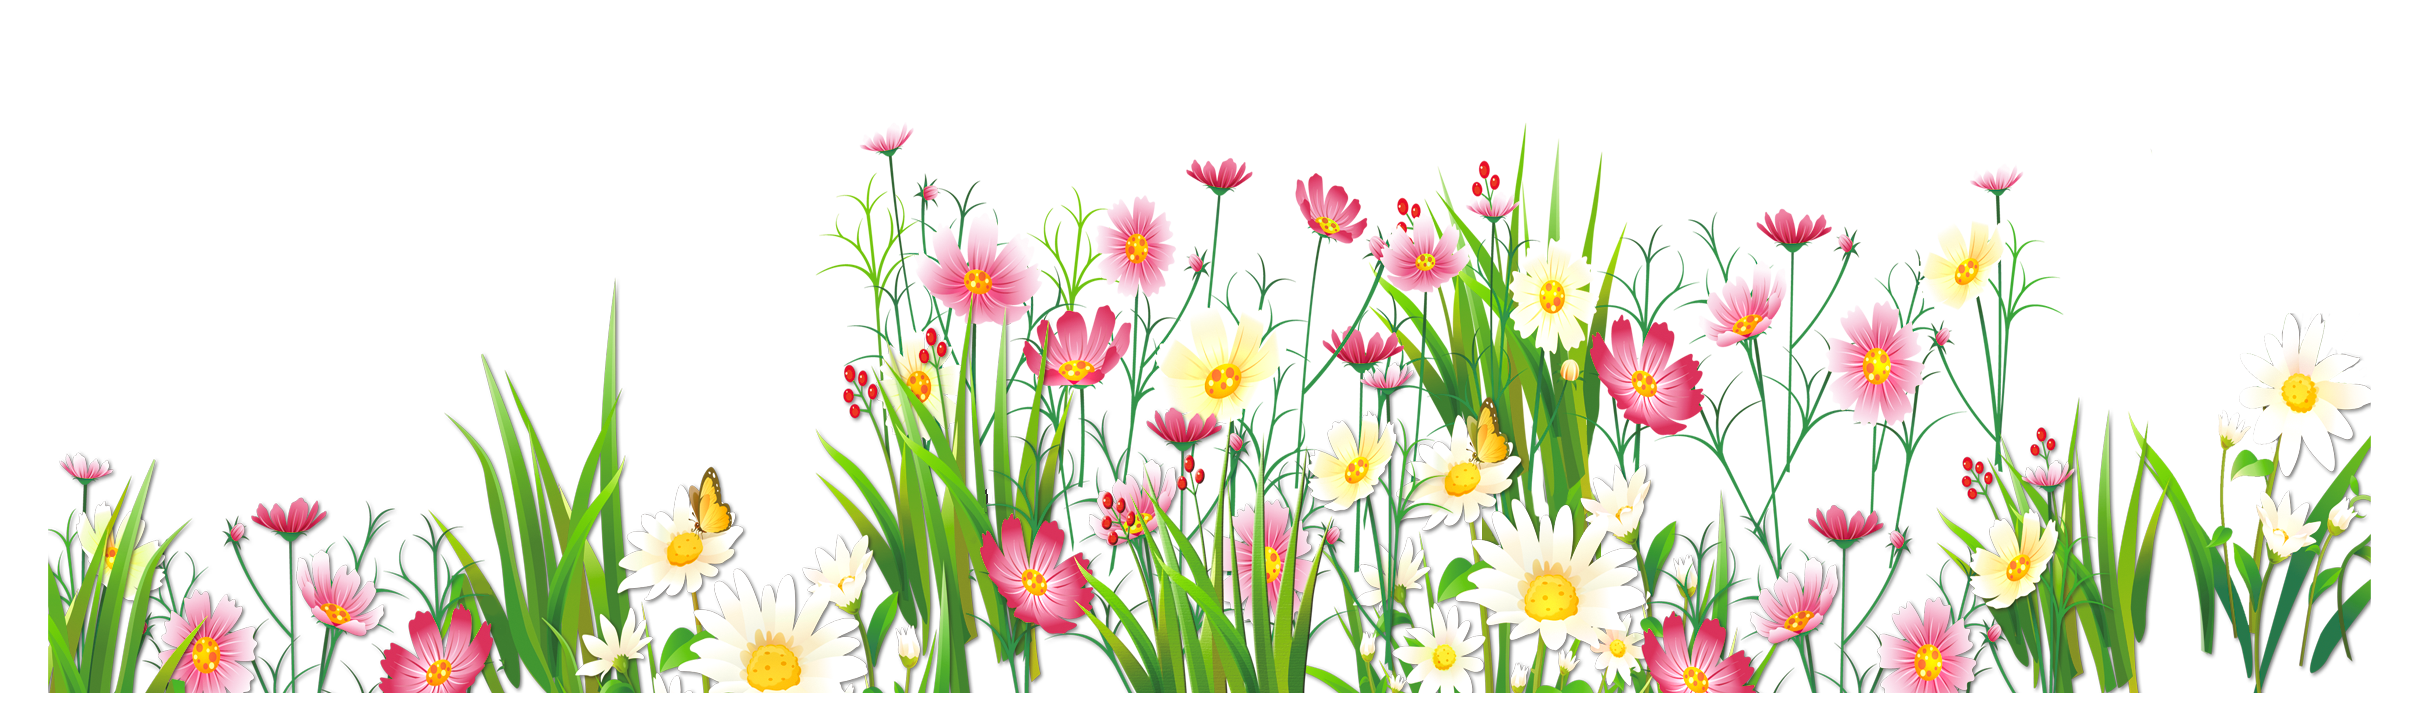 Short flower clipart clip art freeuse library Flowers and Grass PNG Picture Clipart | PNG Flowers | Pinterest ... clip art freeuse library